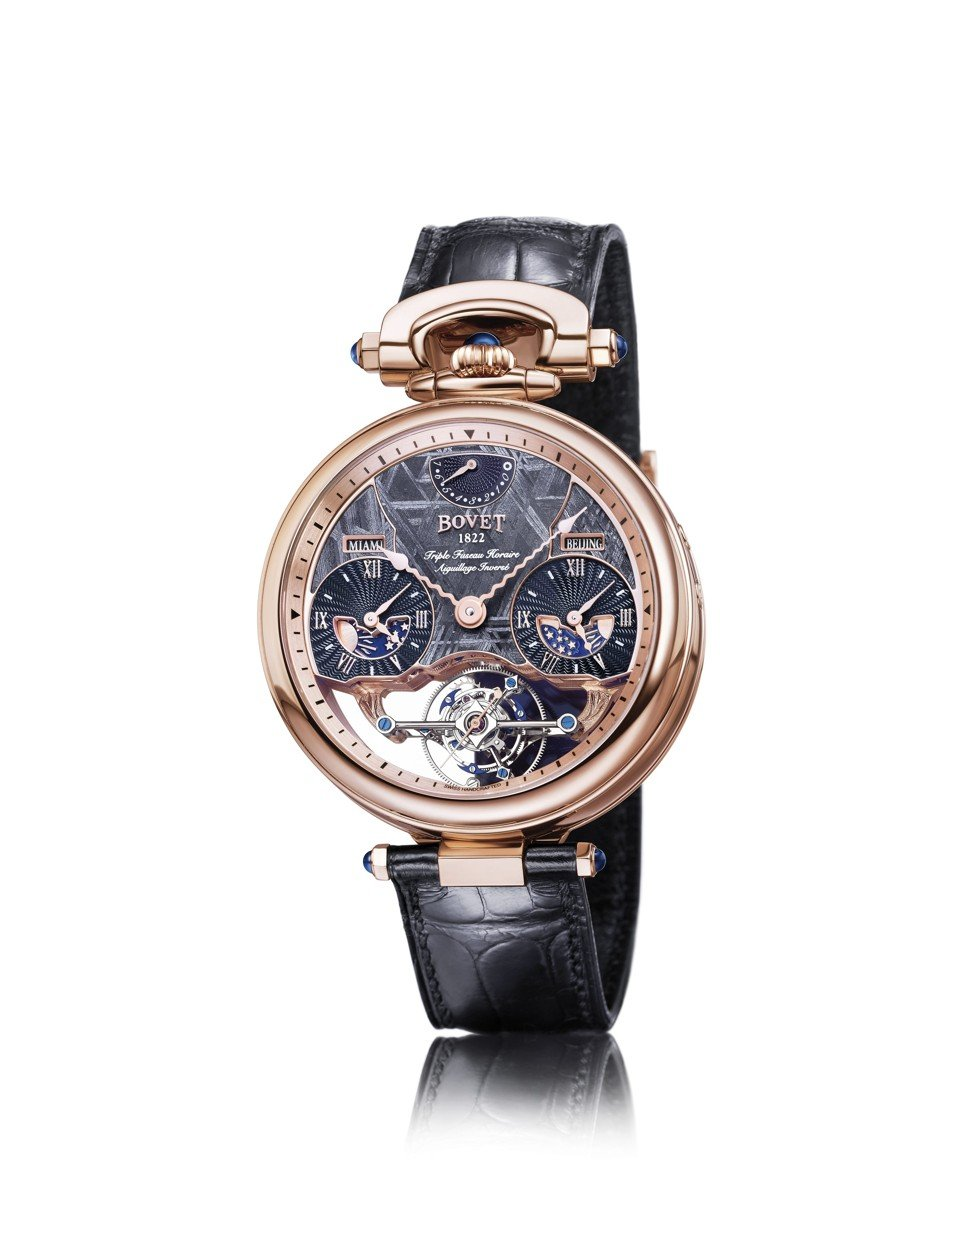 time transformed the r star bovet watches recital cital shooting